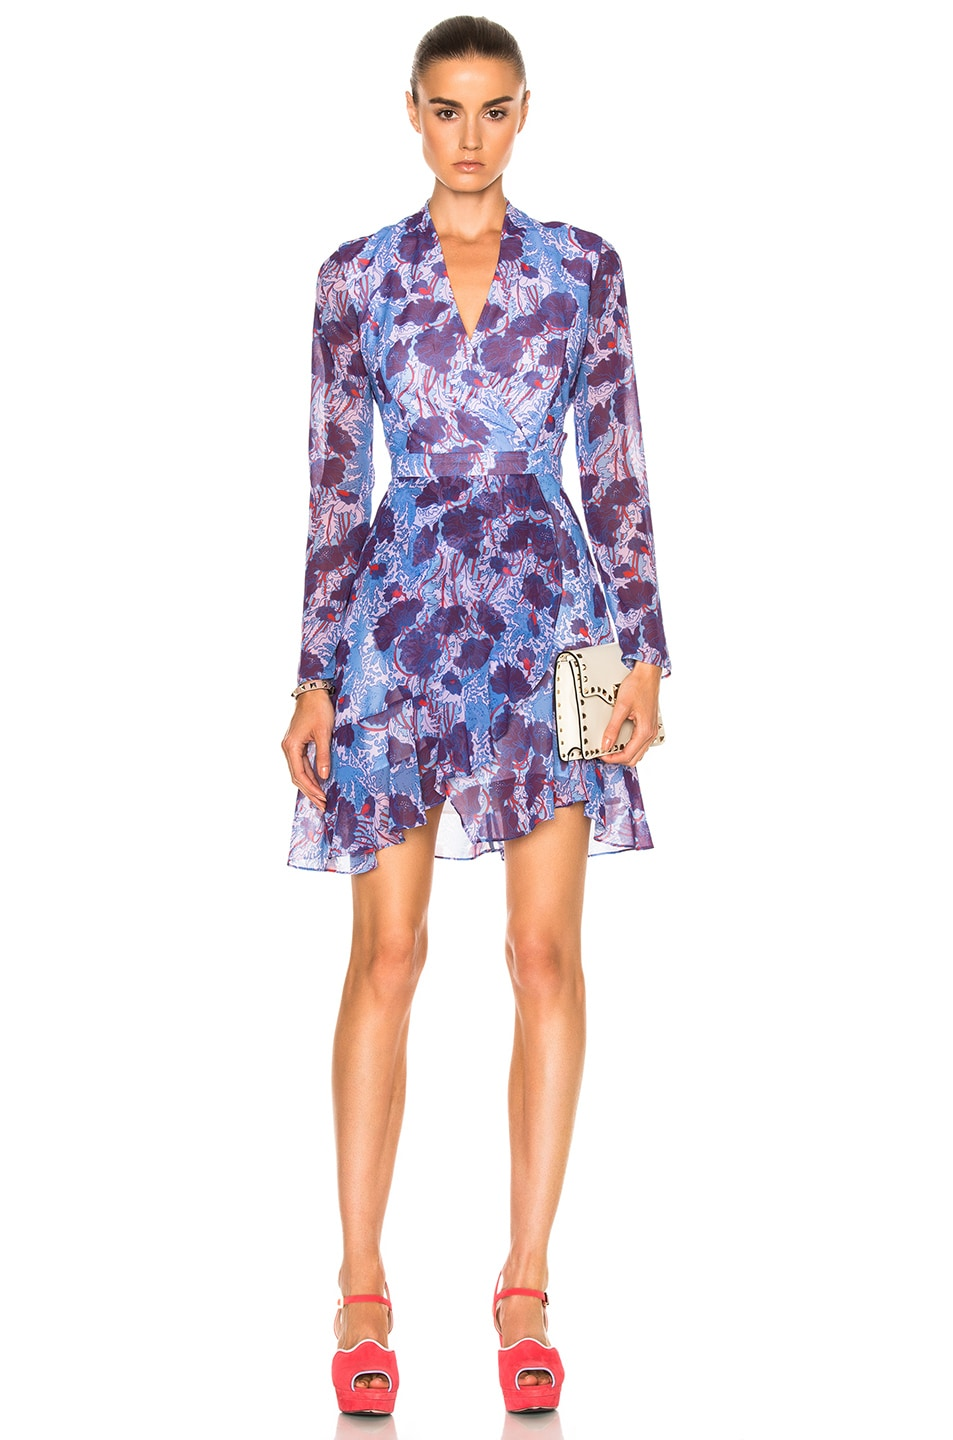 Carven Floral Long Sleeve Dress in Bleu & Violet | FWRD